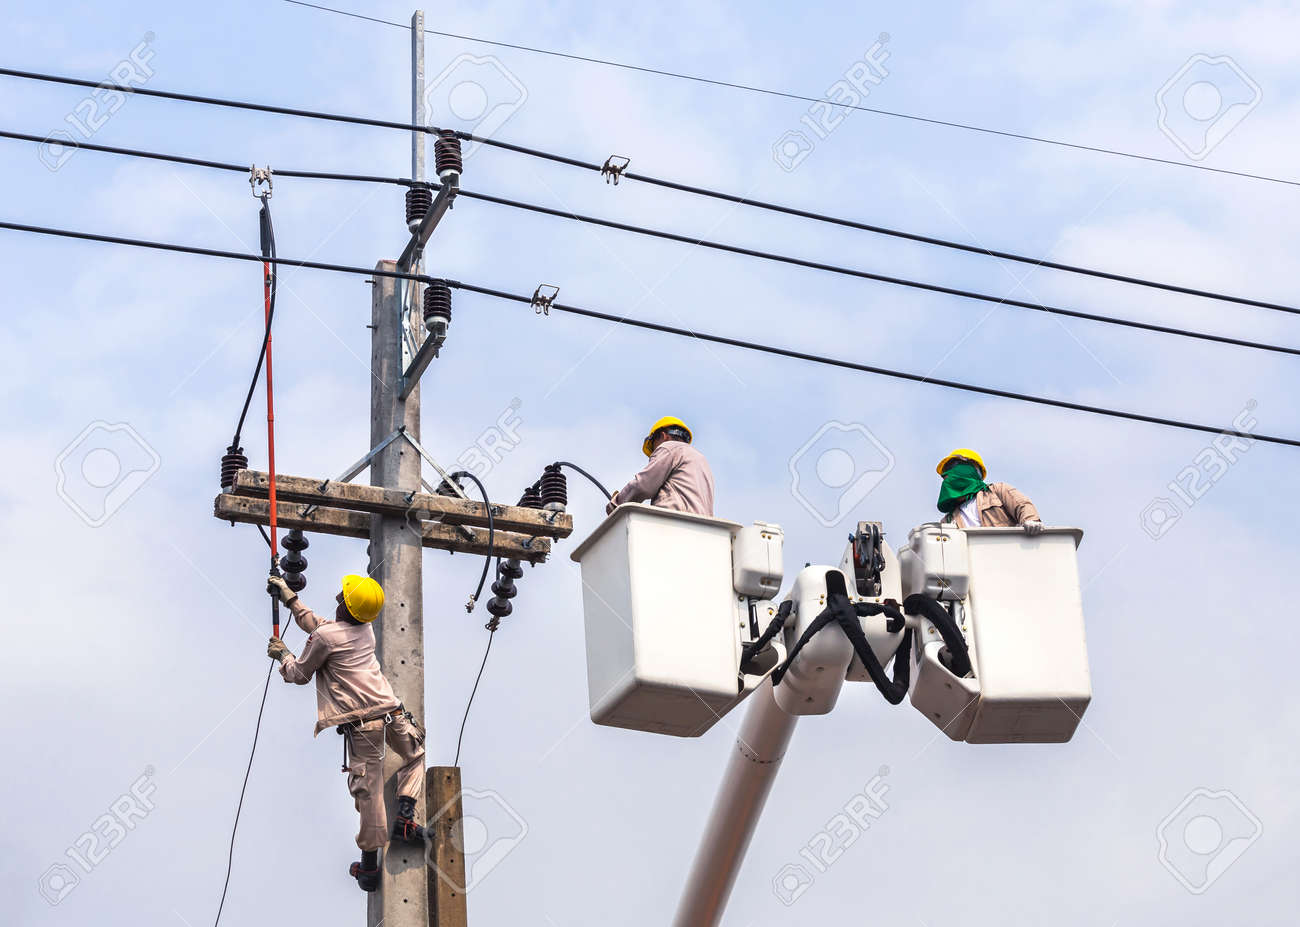 Bucket Electrical Wiring Detailed Diagrams X Y G Electricians Repairing Wire Of The Power Line With Hydraulic Work